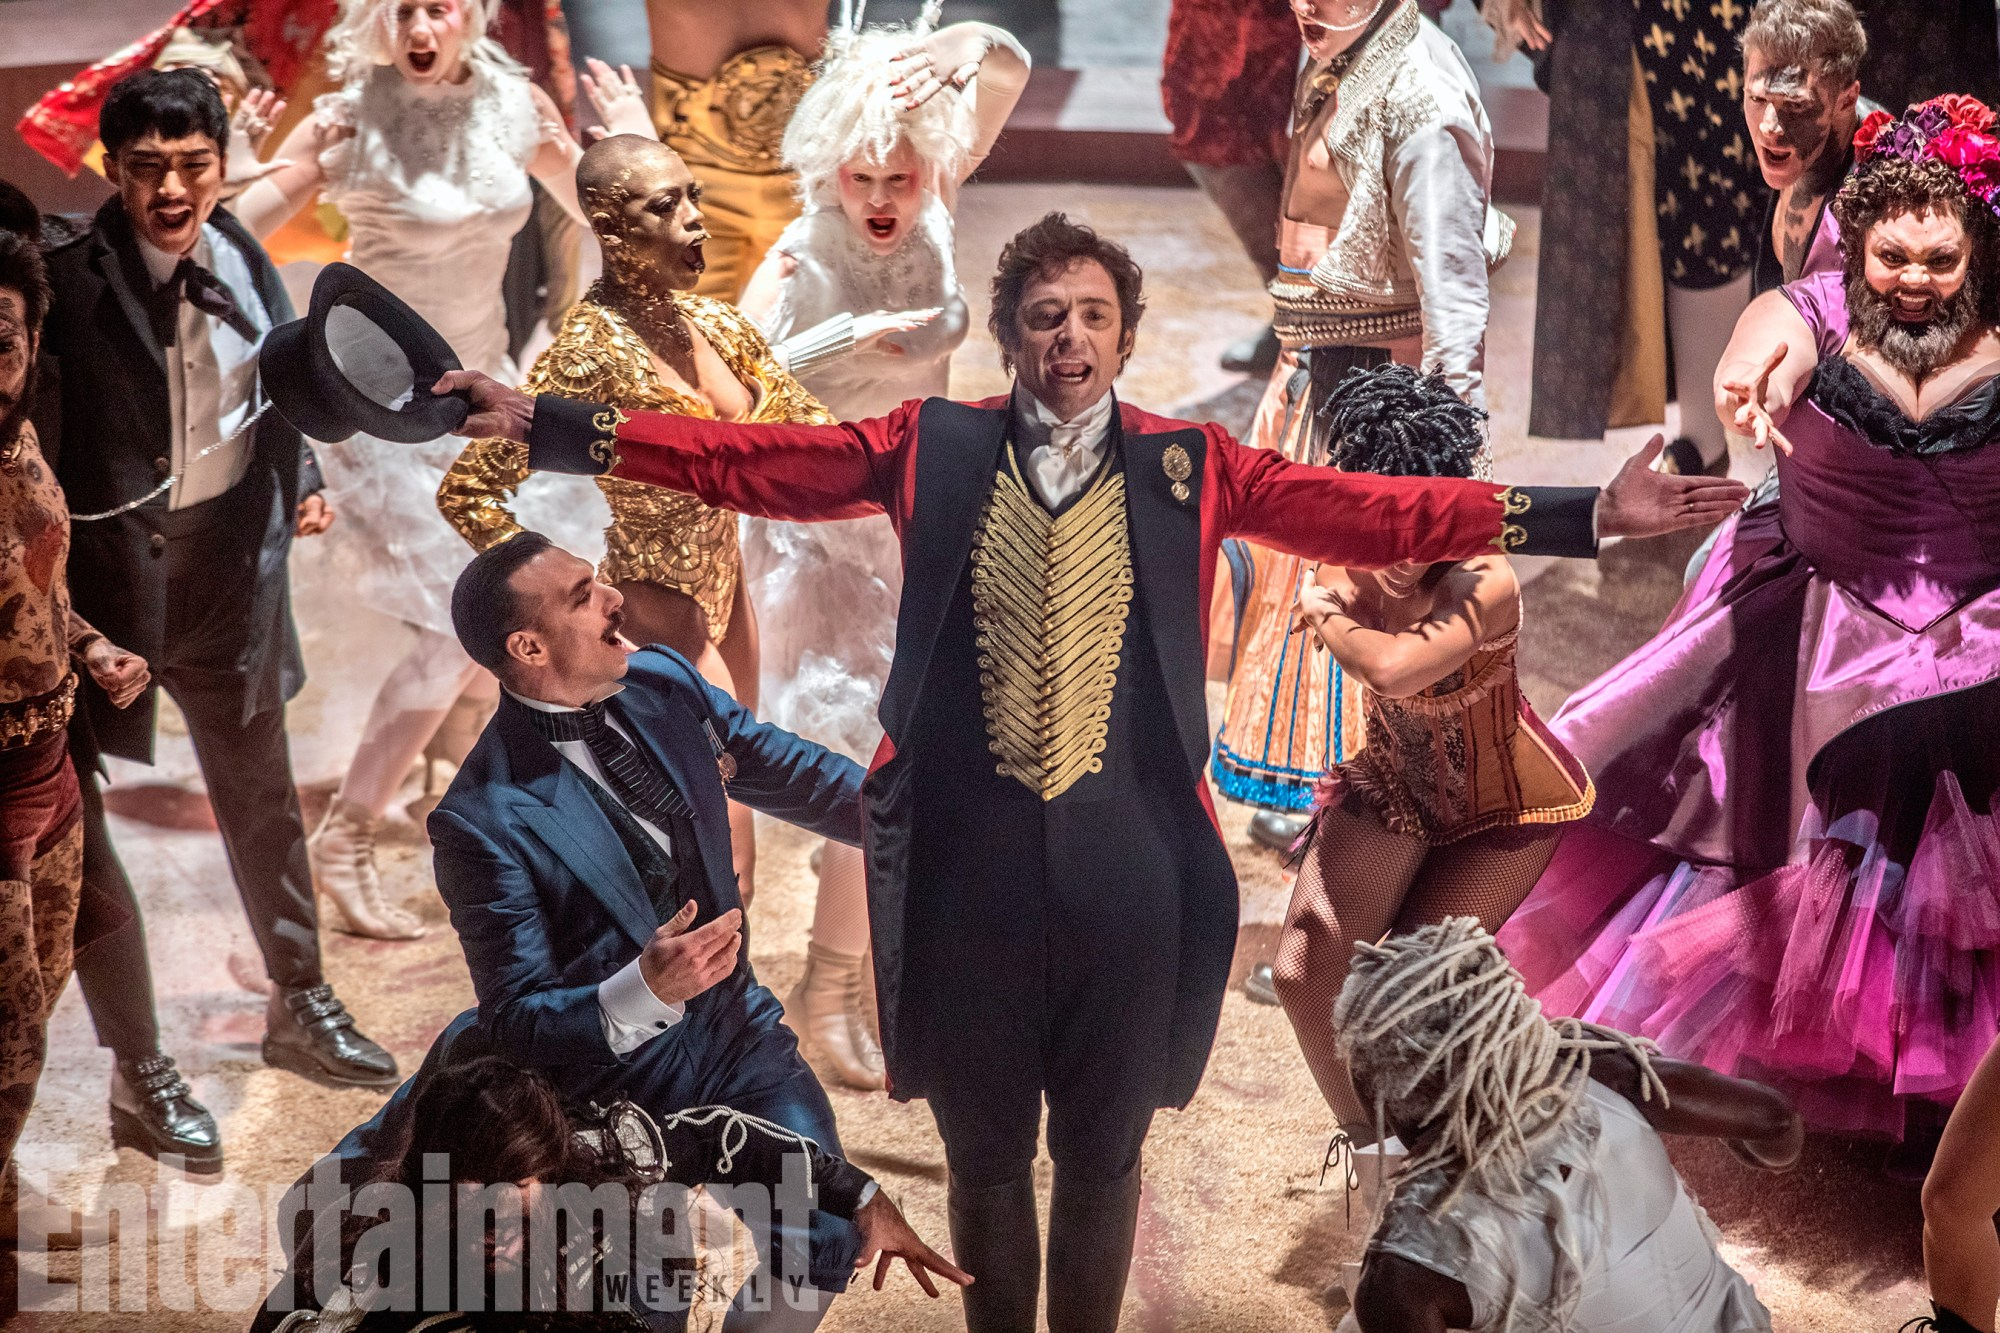 The Greatest Showman (2017)Hugh Jackman